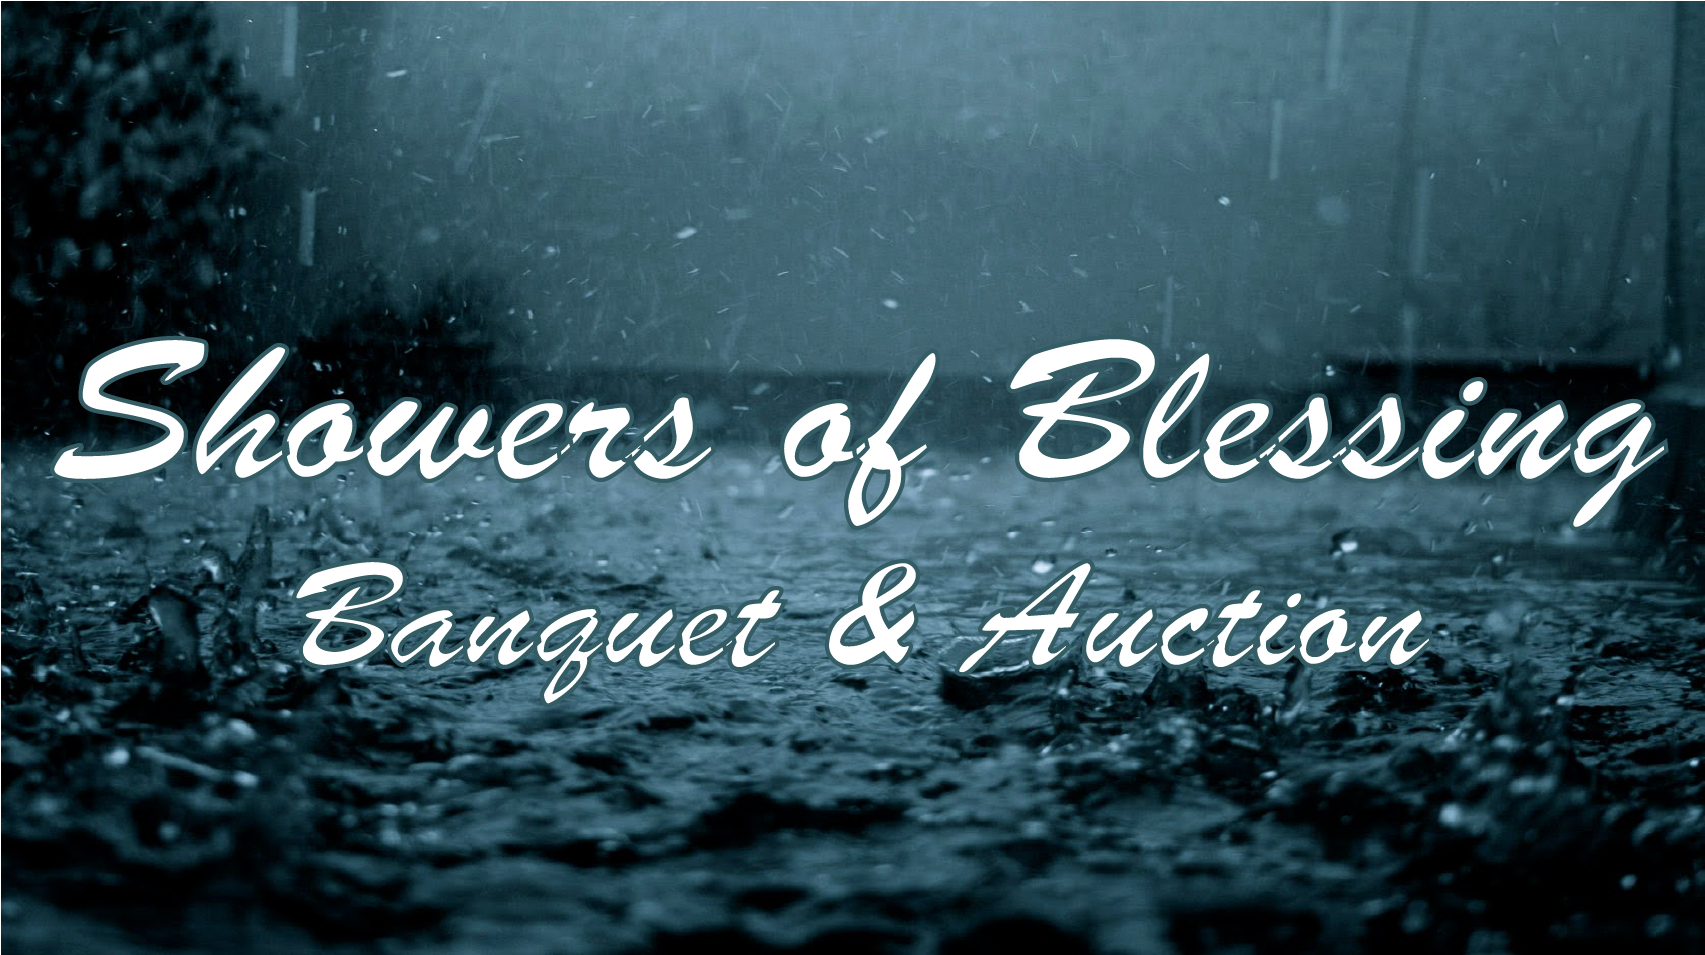 Showers of Blessing: Banquet & Auction